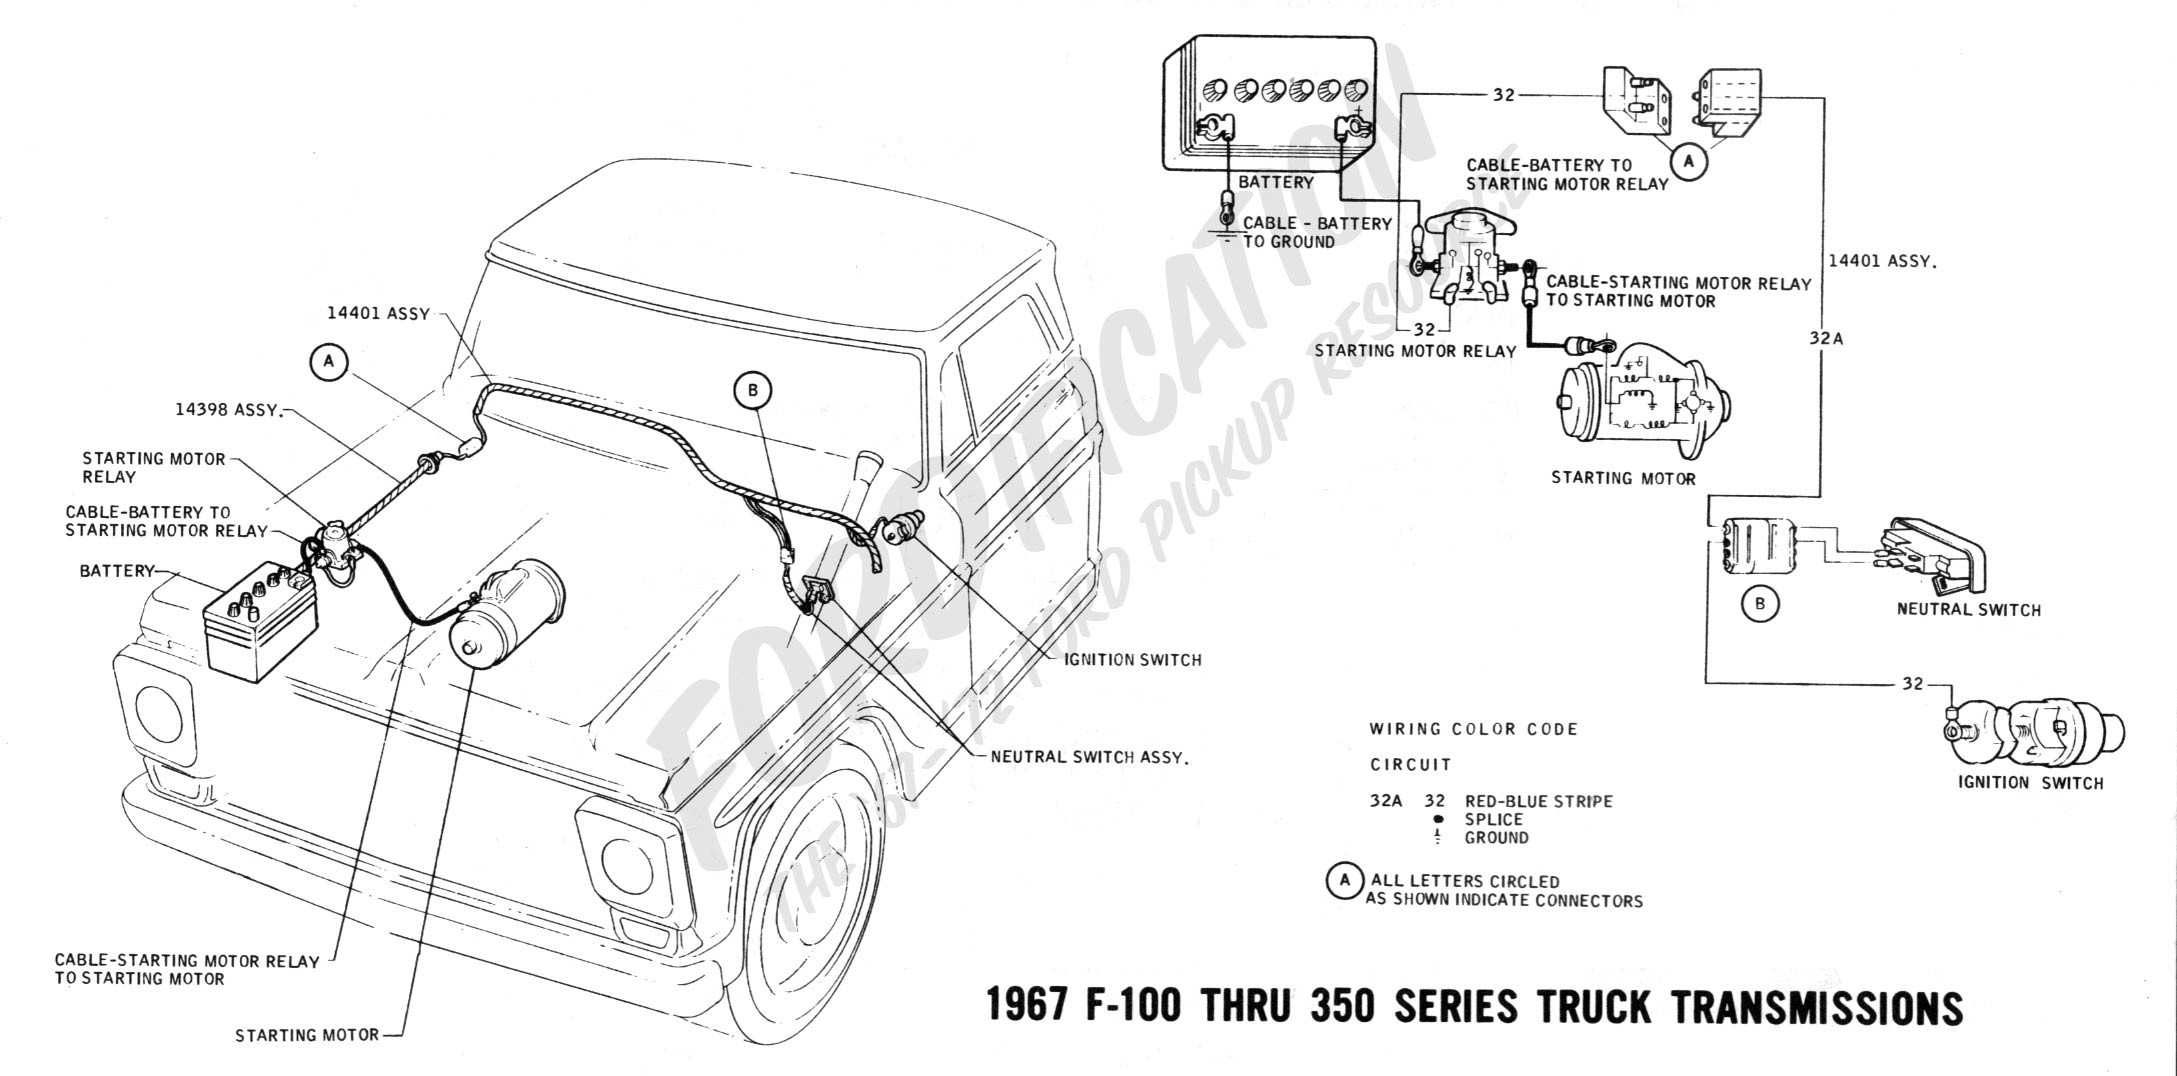 ford 460 engine diagram ford charging system wiring